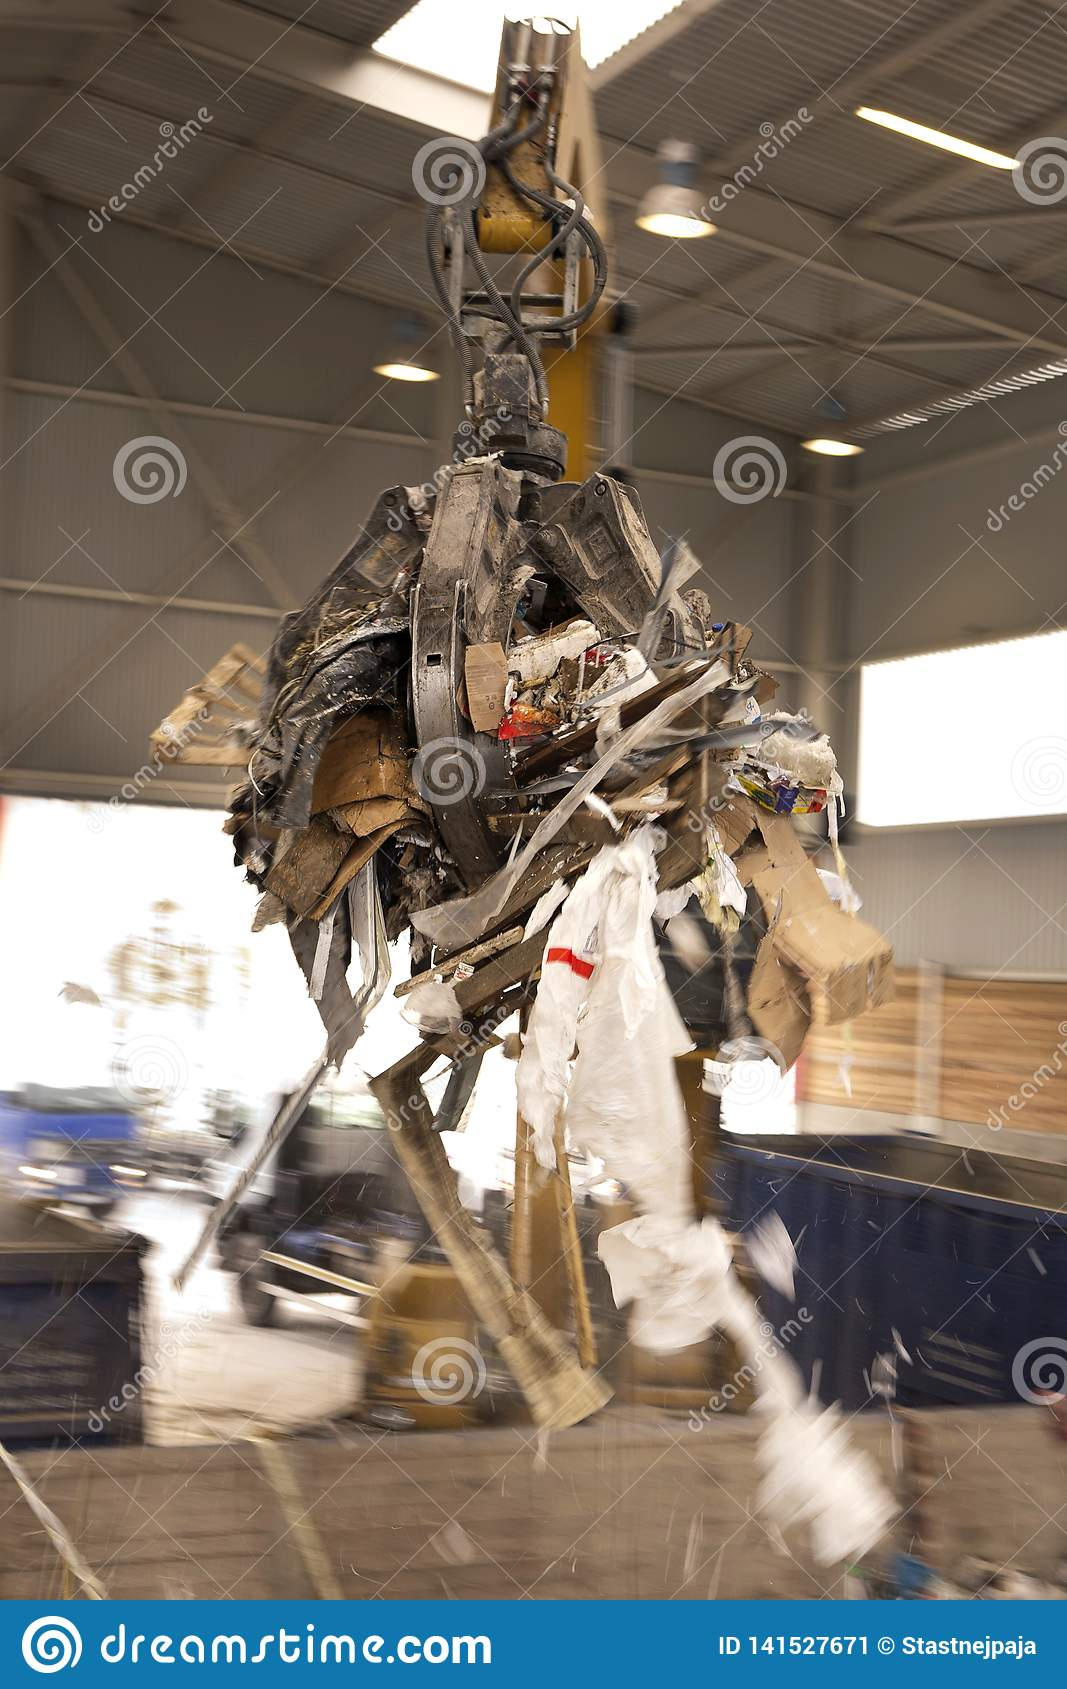 The grab takes the rubbish and move it to the incinerator where all waste is burned. Grab taking waste for burning it in the incin